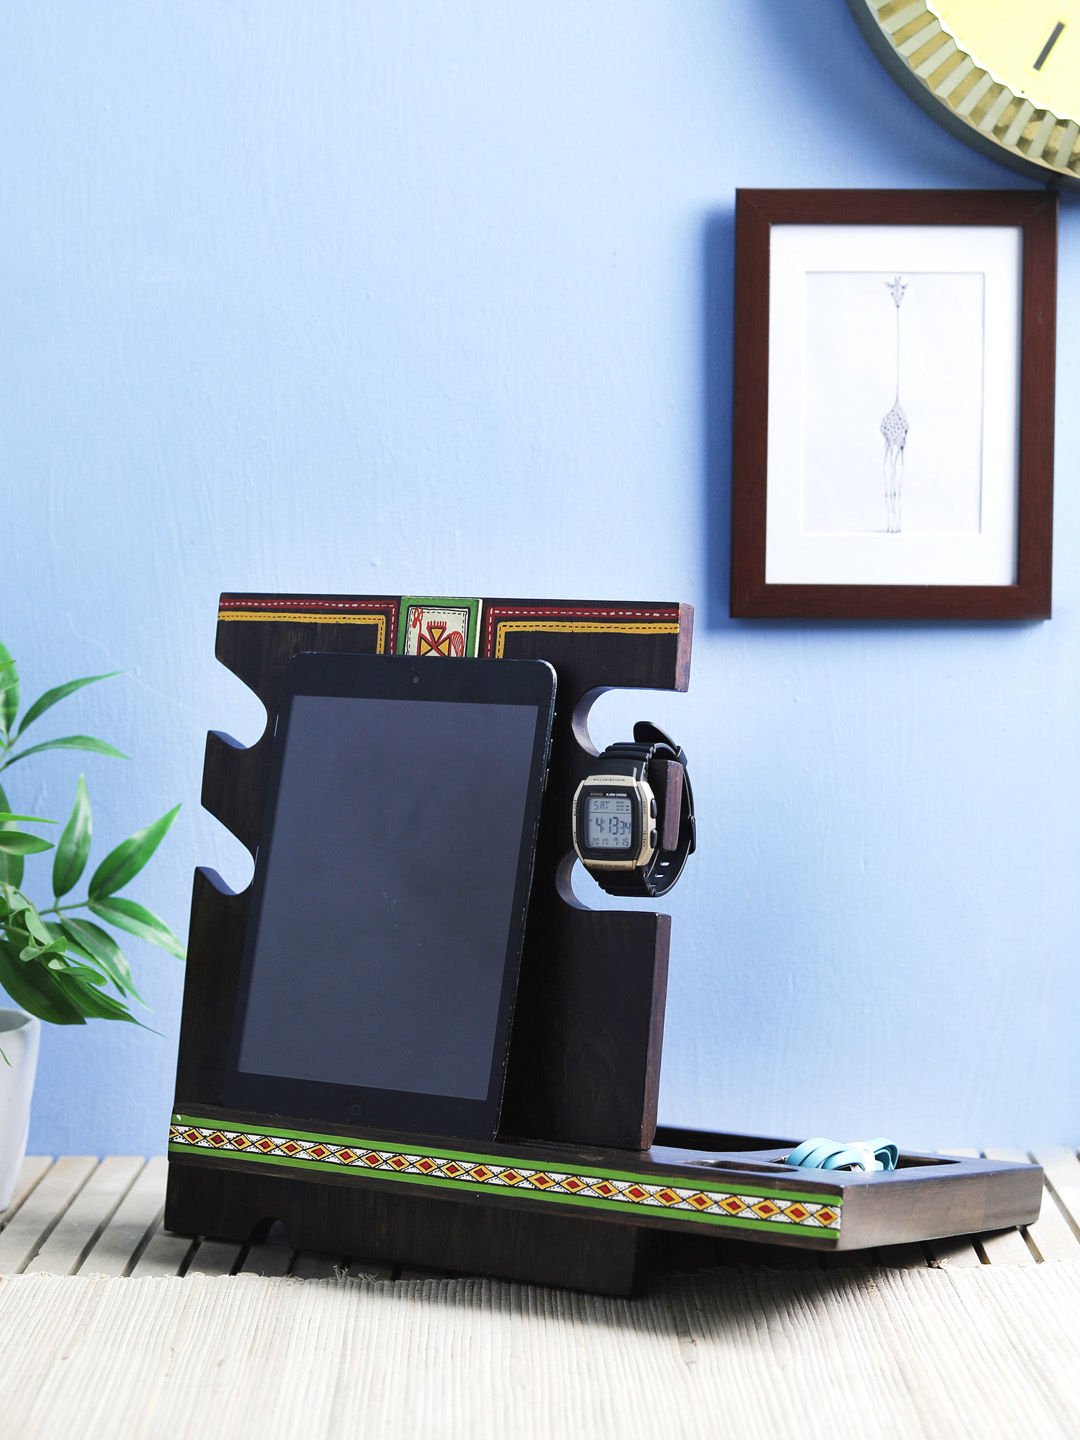 Wooden Mobile Tab Ipad Stand With Spectacle Holder Desk Organizer